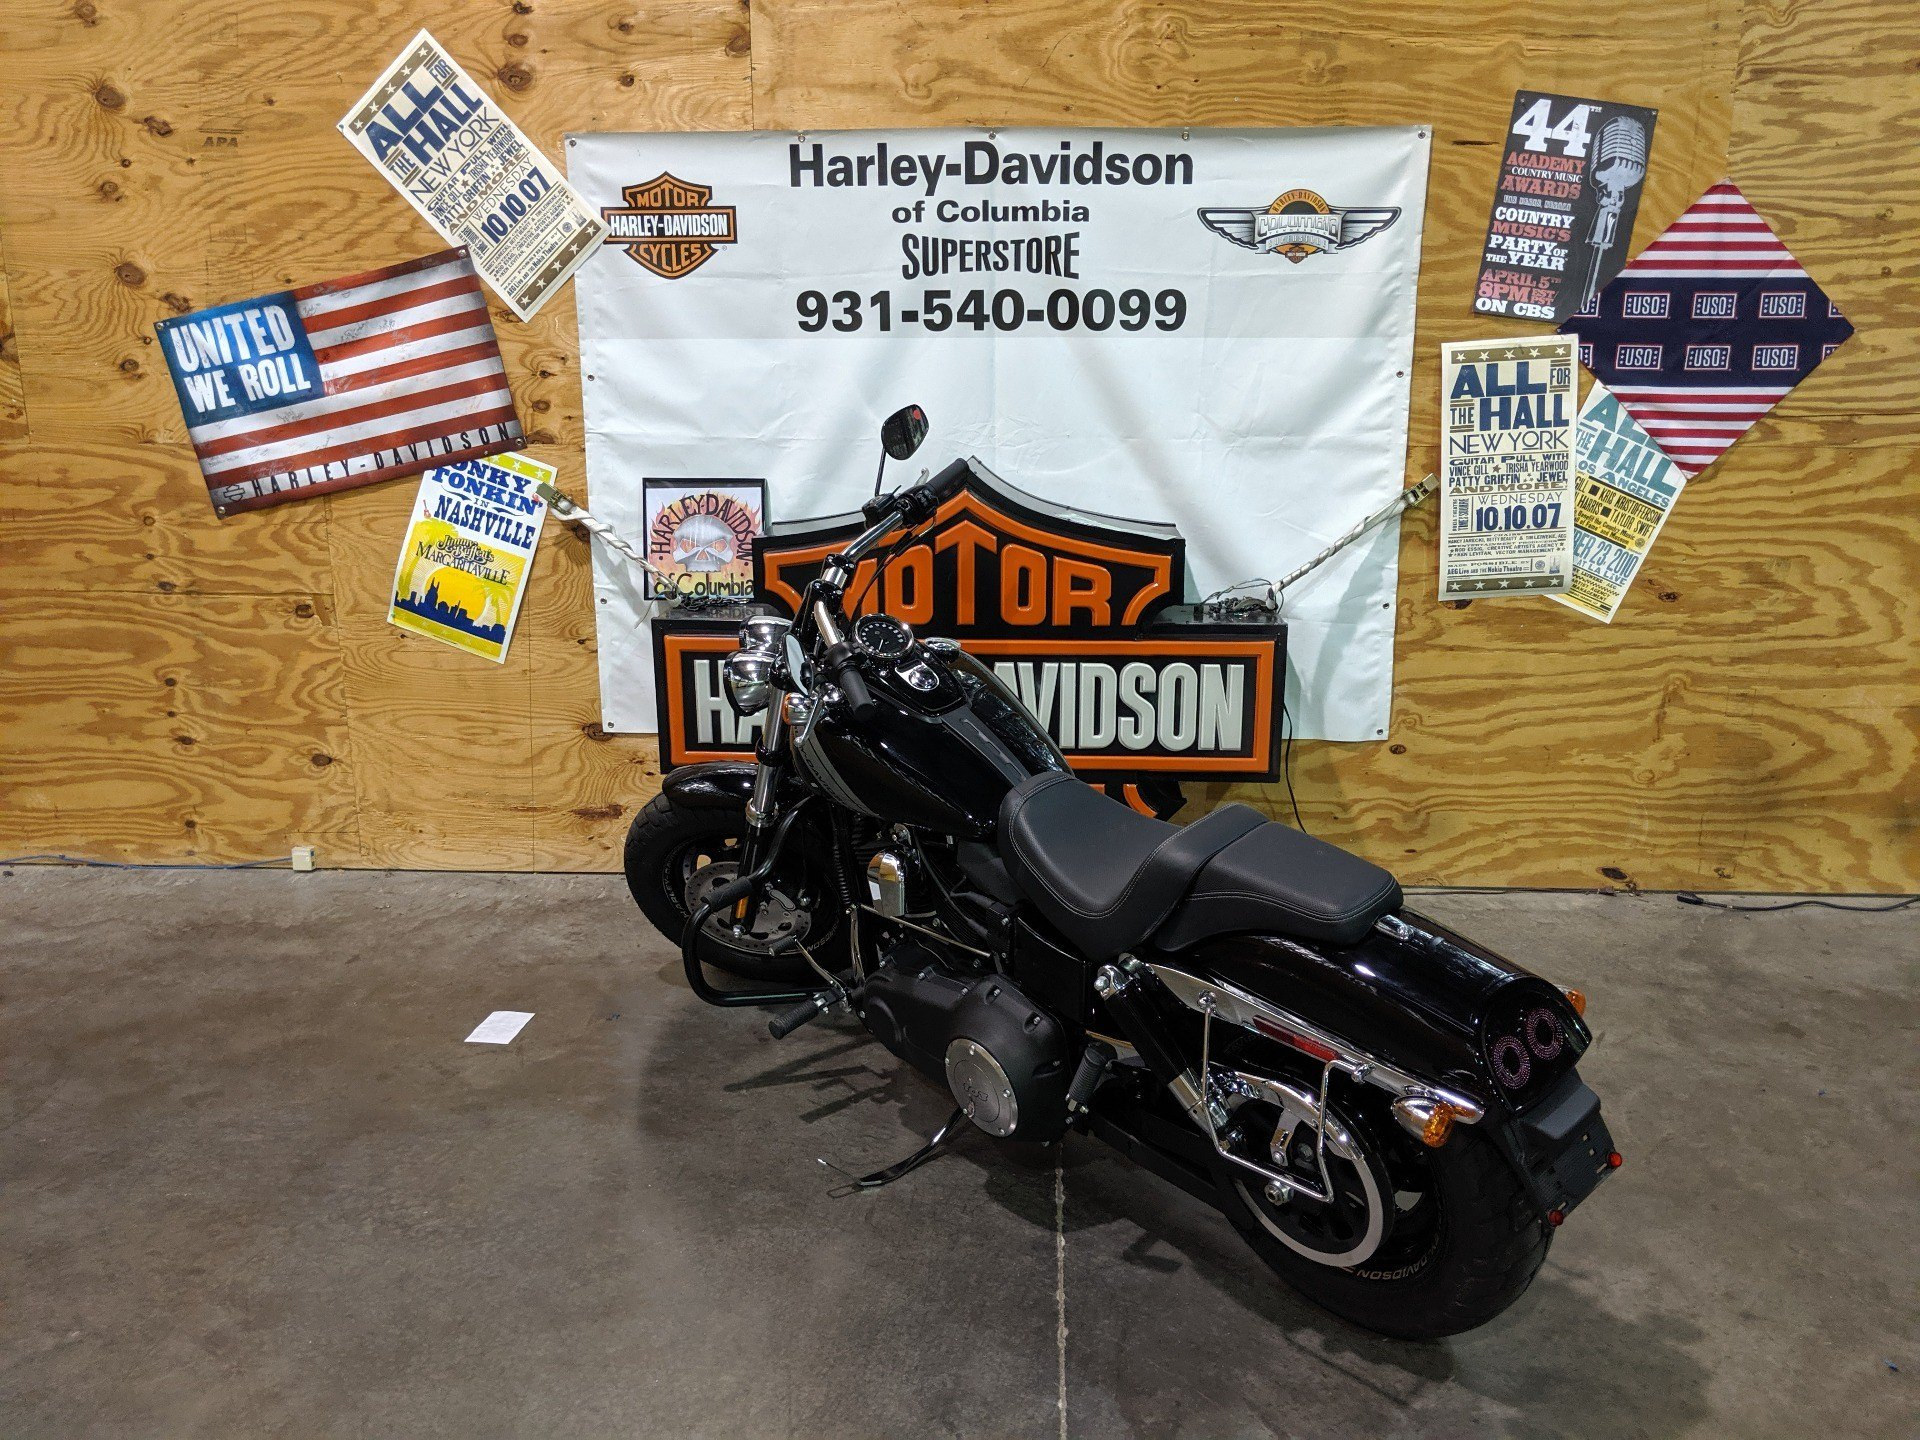 2017 Harley-Davidson FAT BOB in Columbia, Tennessee - Photo 6